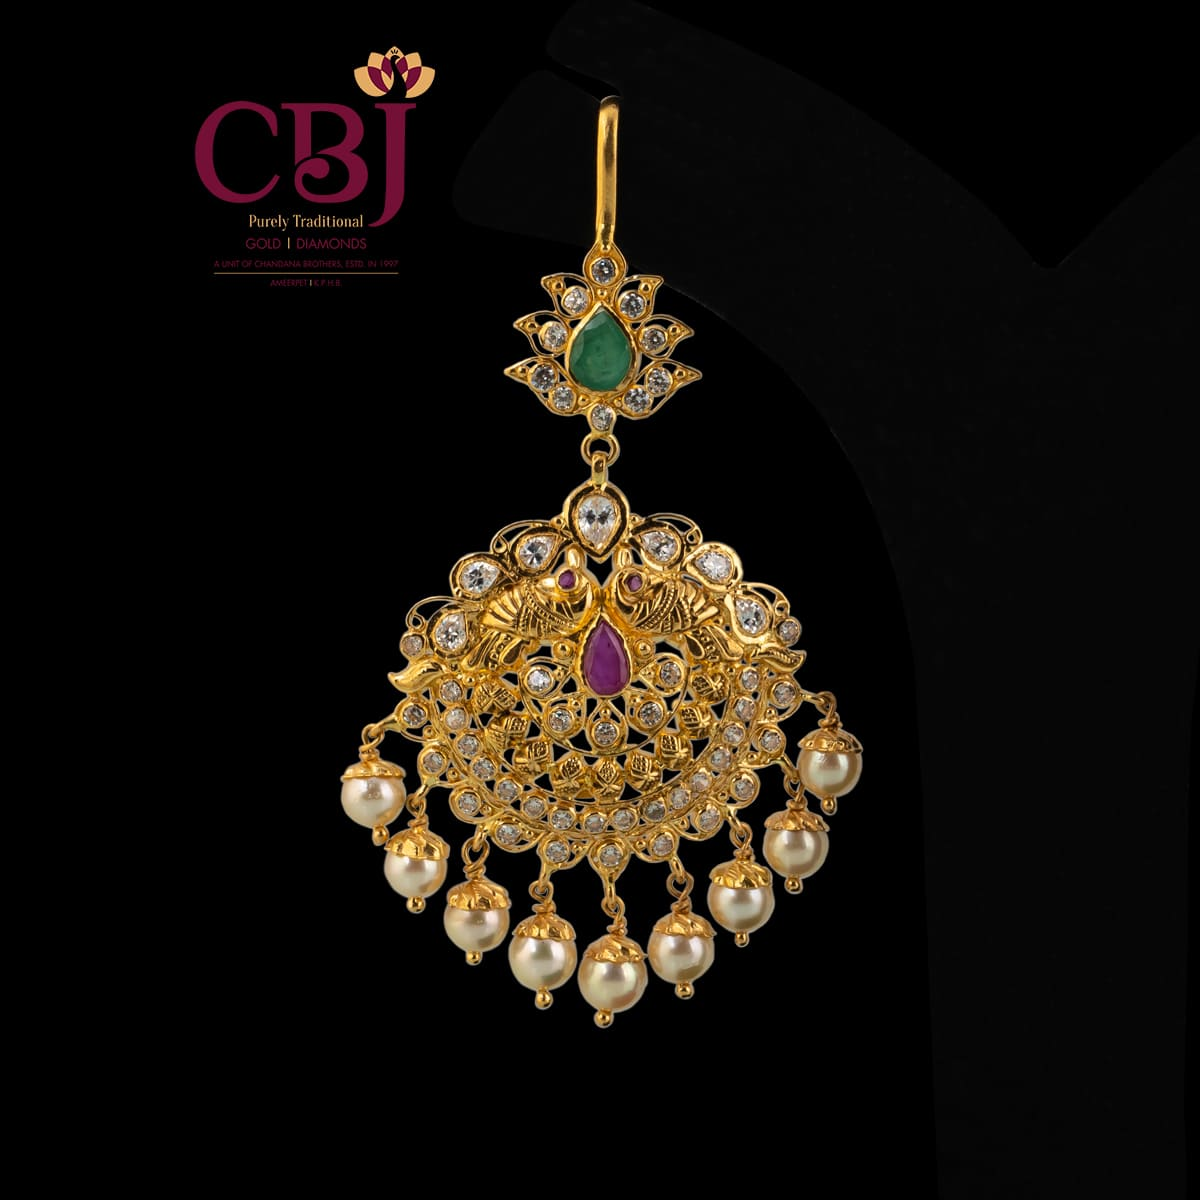 Antique maang tikka featuring CZ stones, put together colourfully.